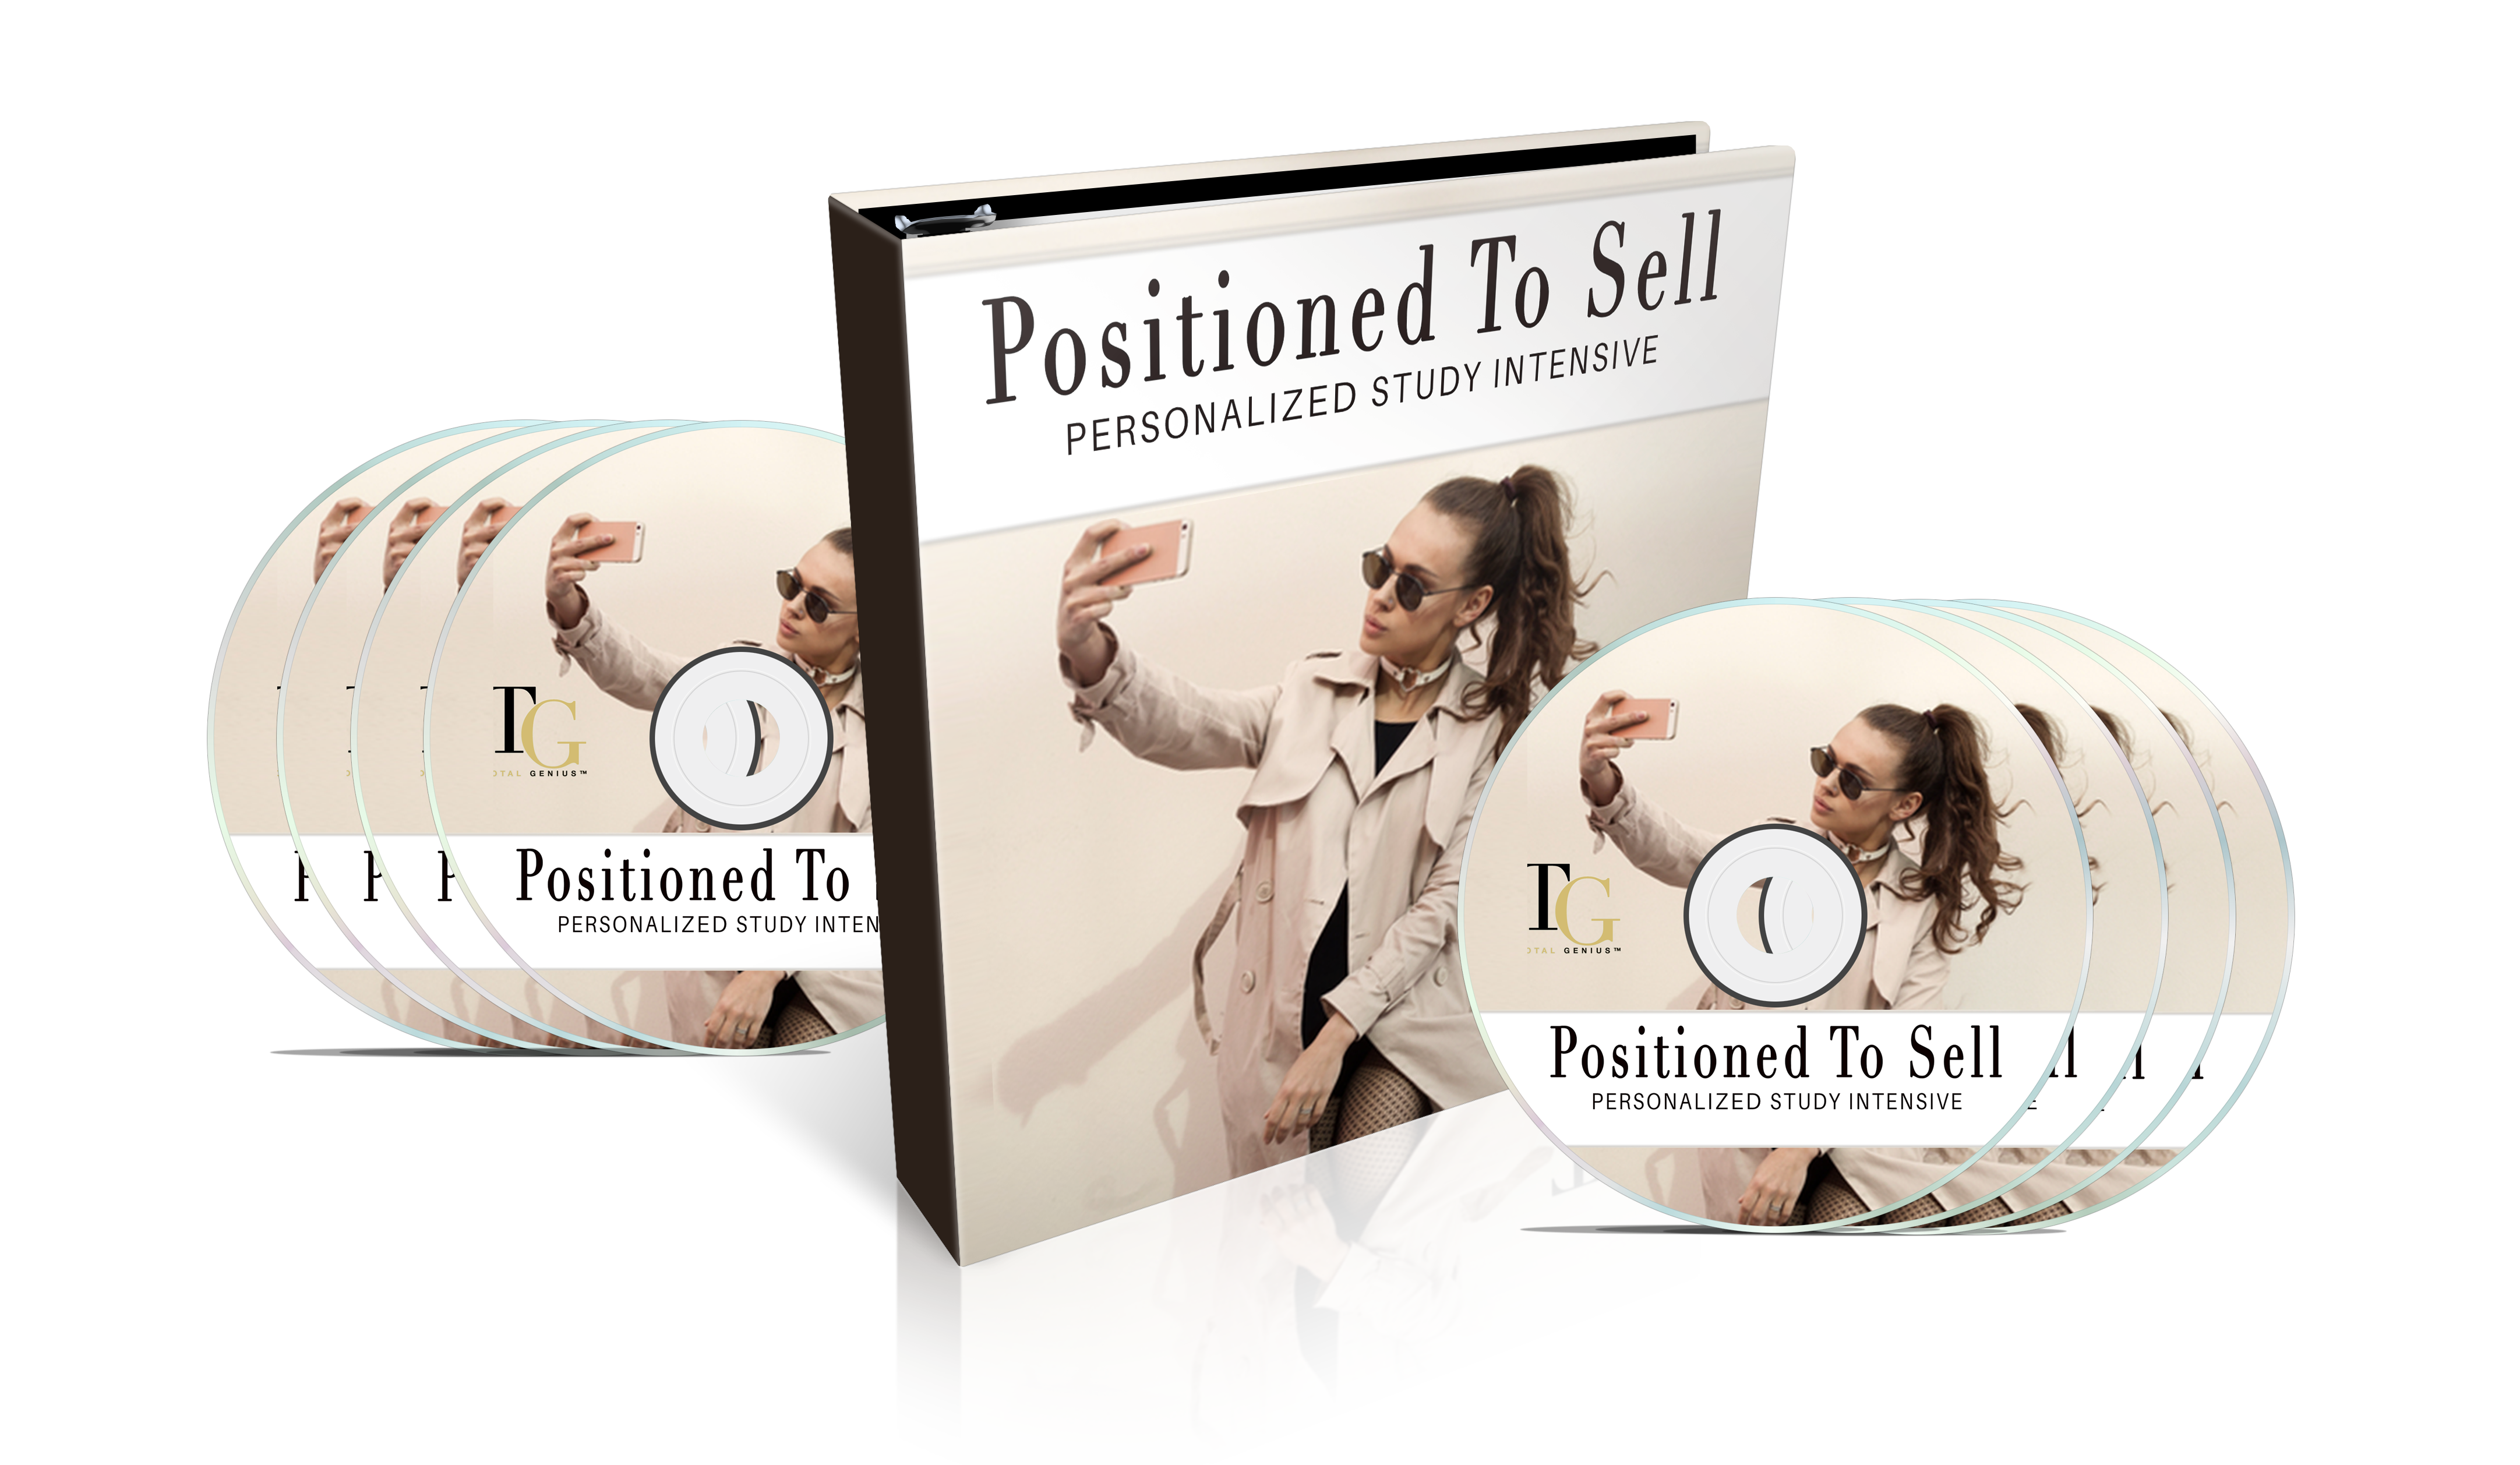 http://totalgenius.net business strategy, positioning